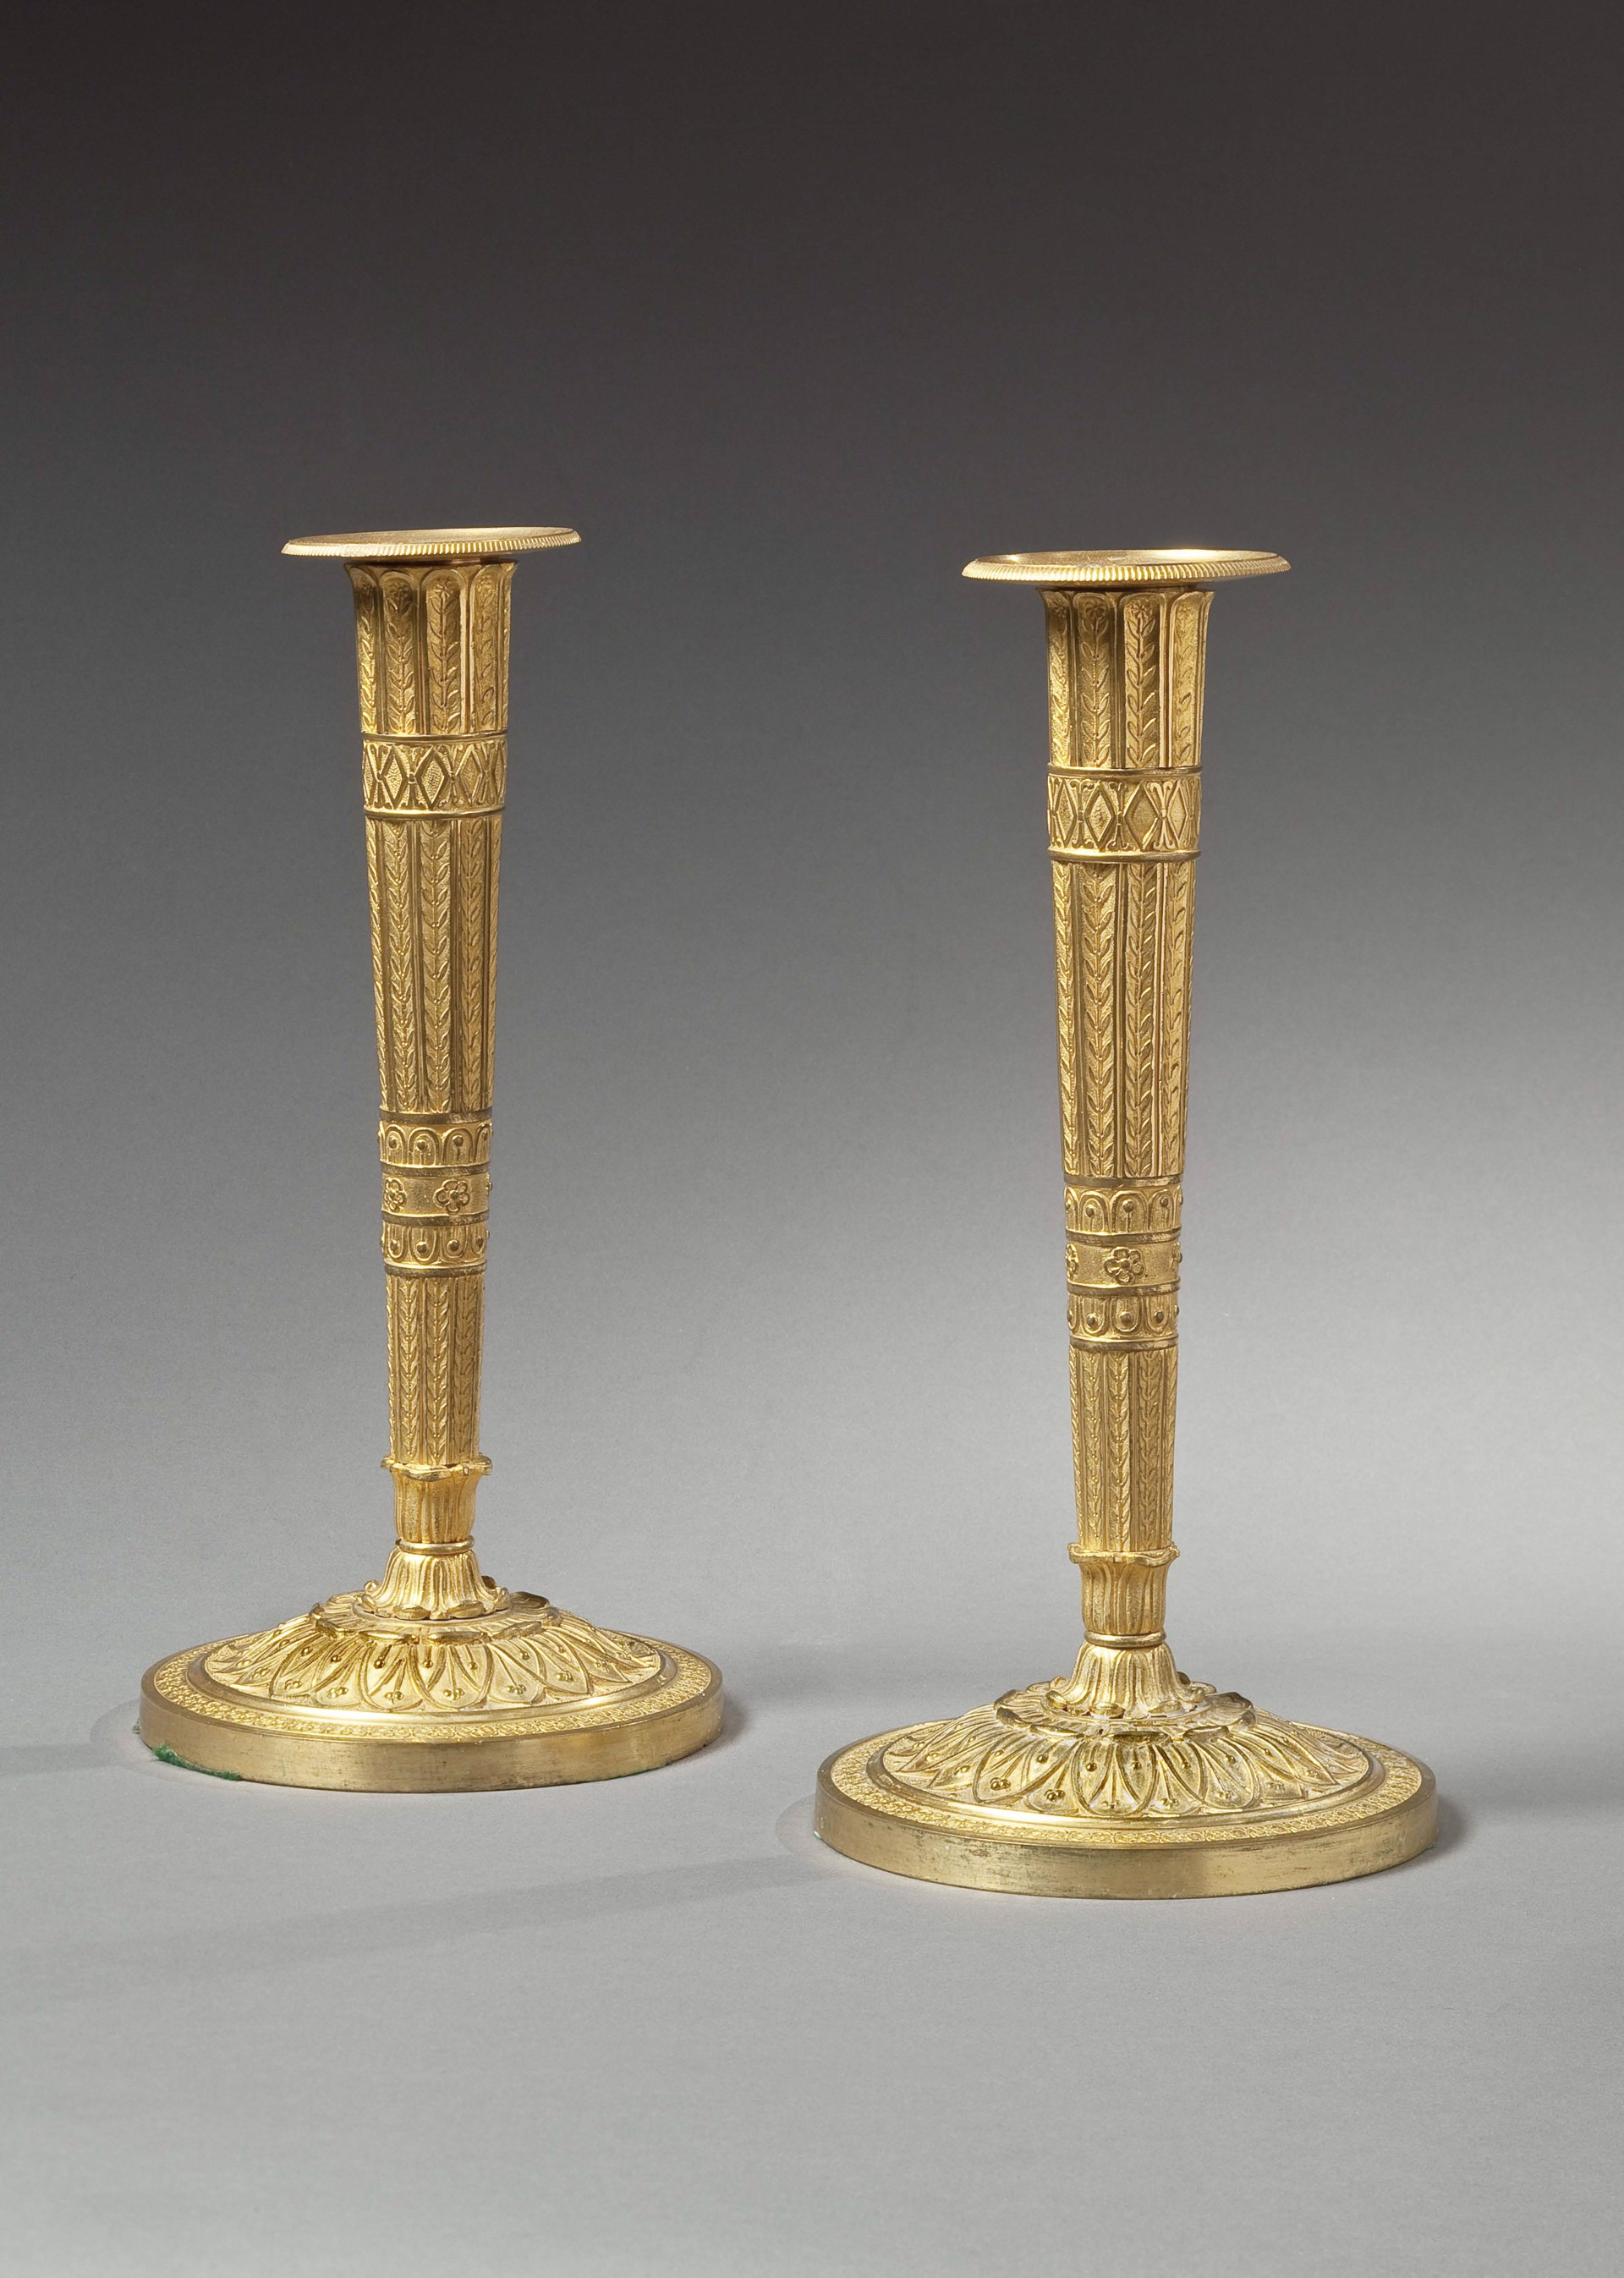 PAIR OF FRENCH GILT-BRONZE CANDLESTICKS